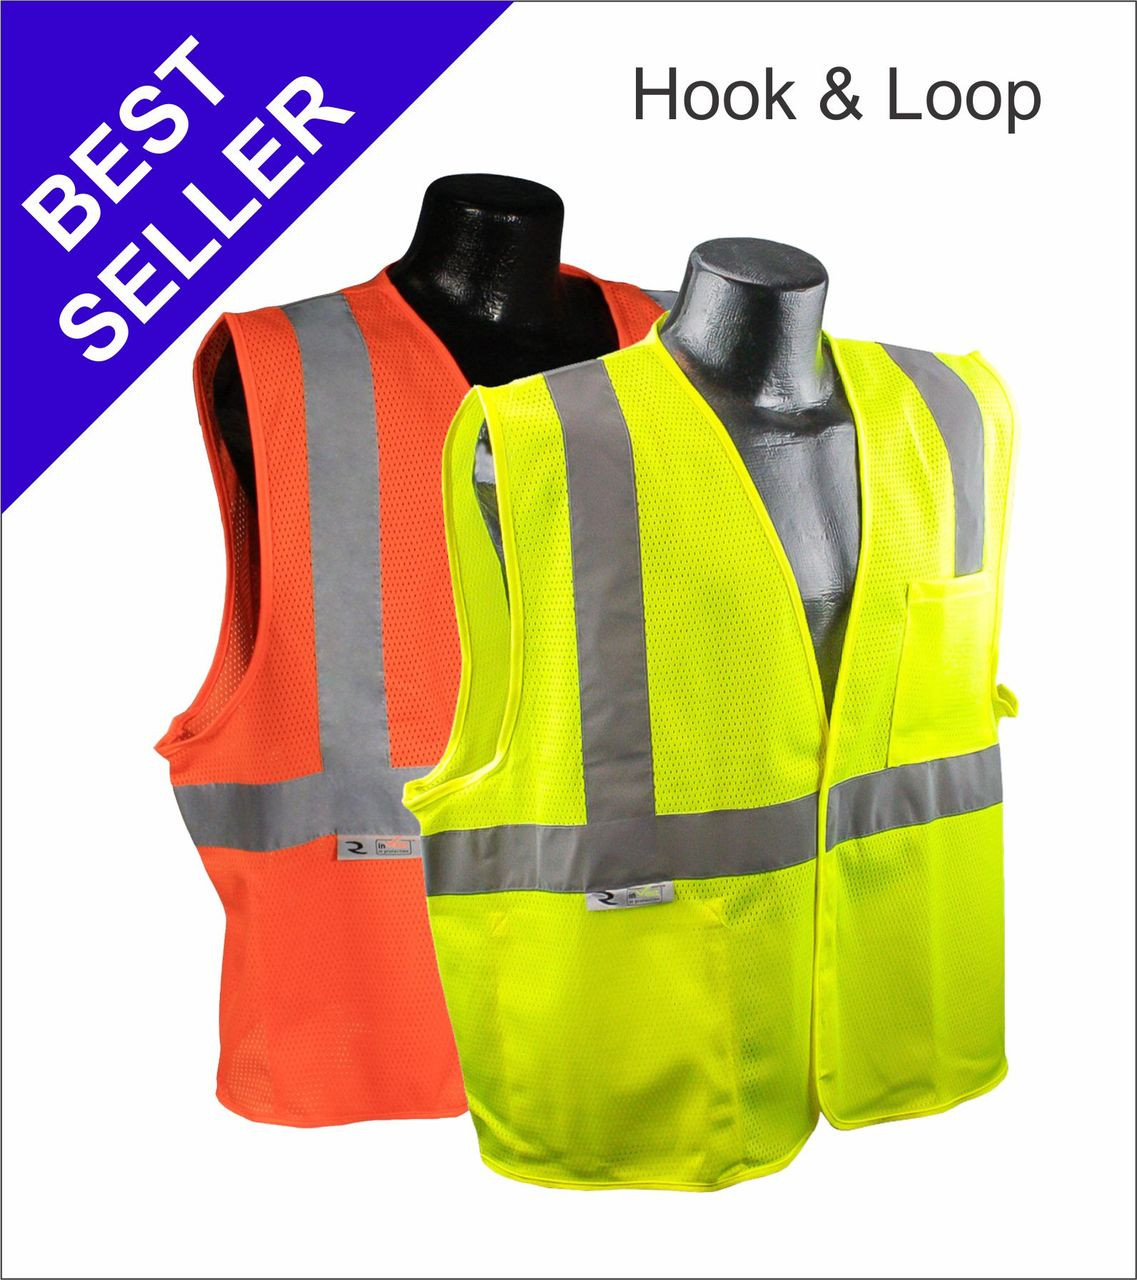 SV2 - Class 2 Safety Vest with Hook and Loop Closure